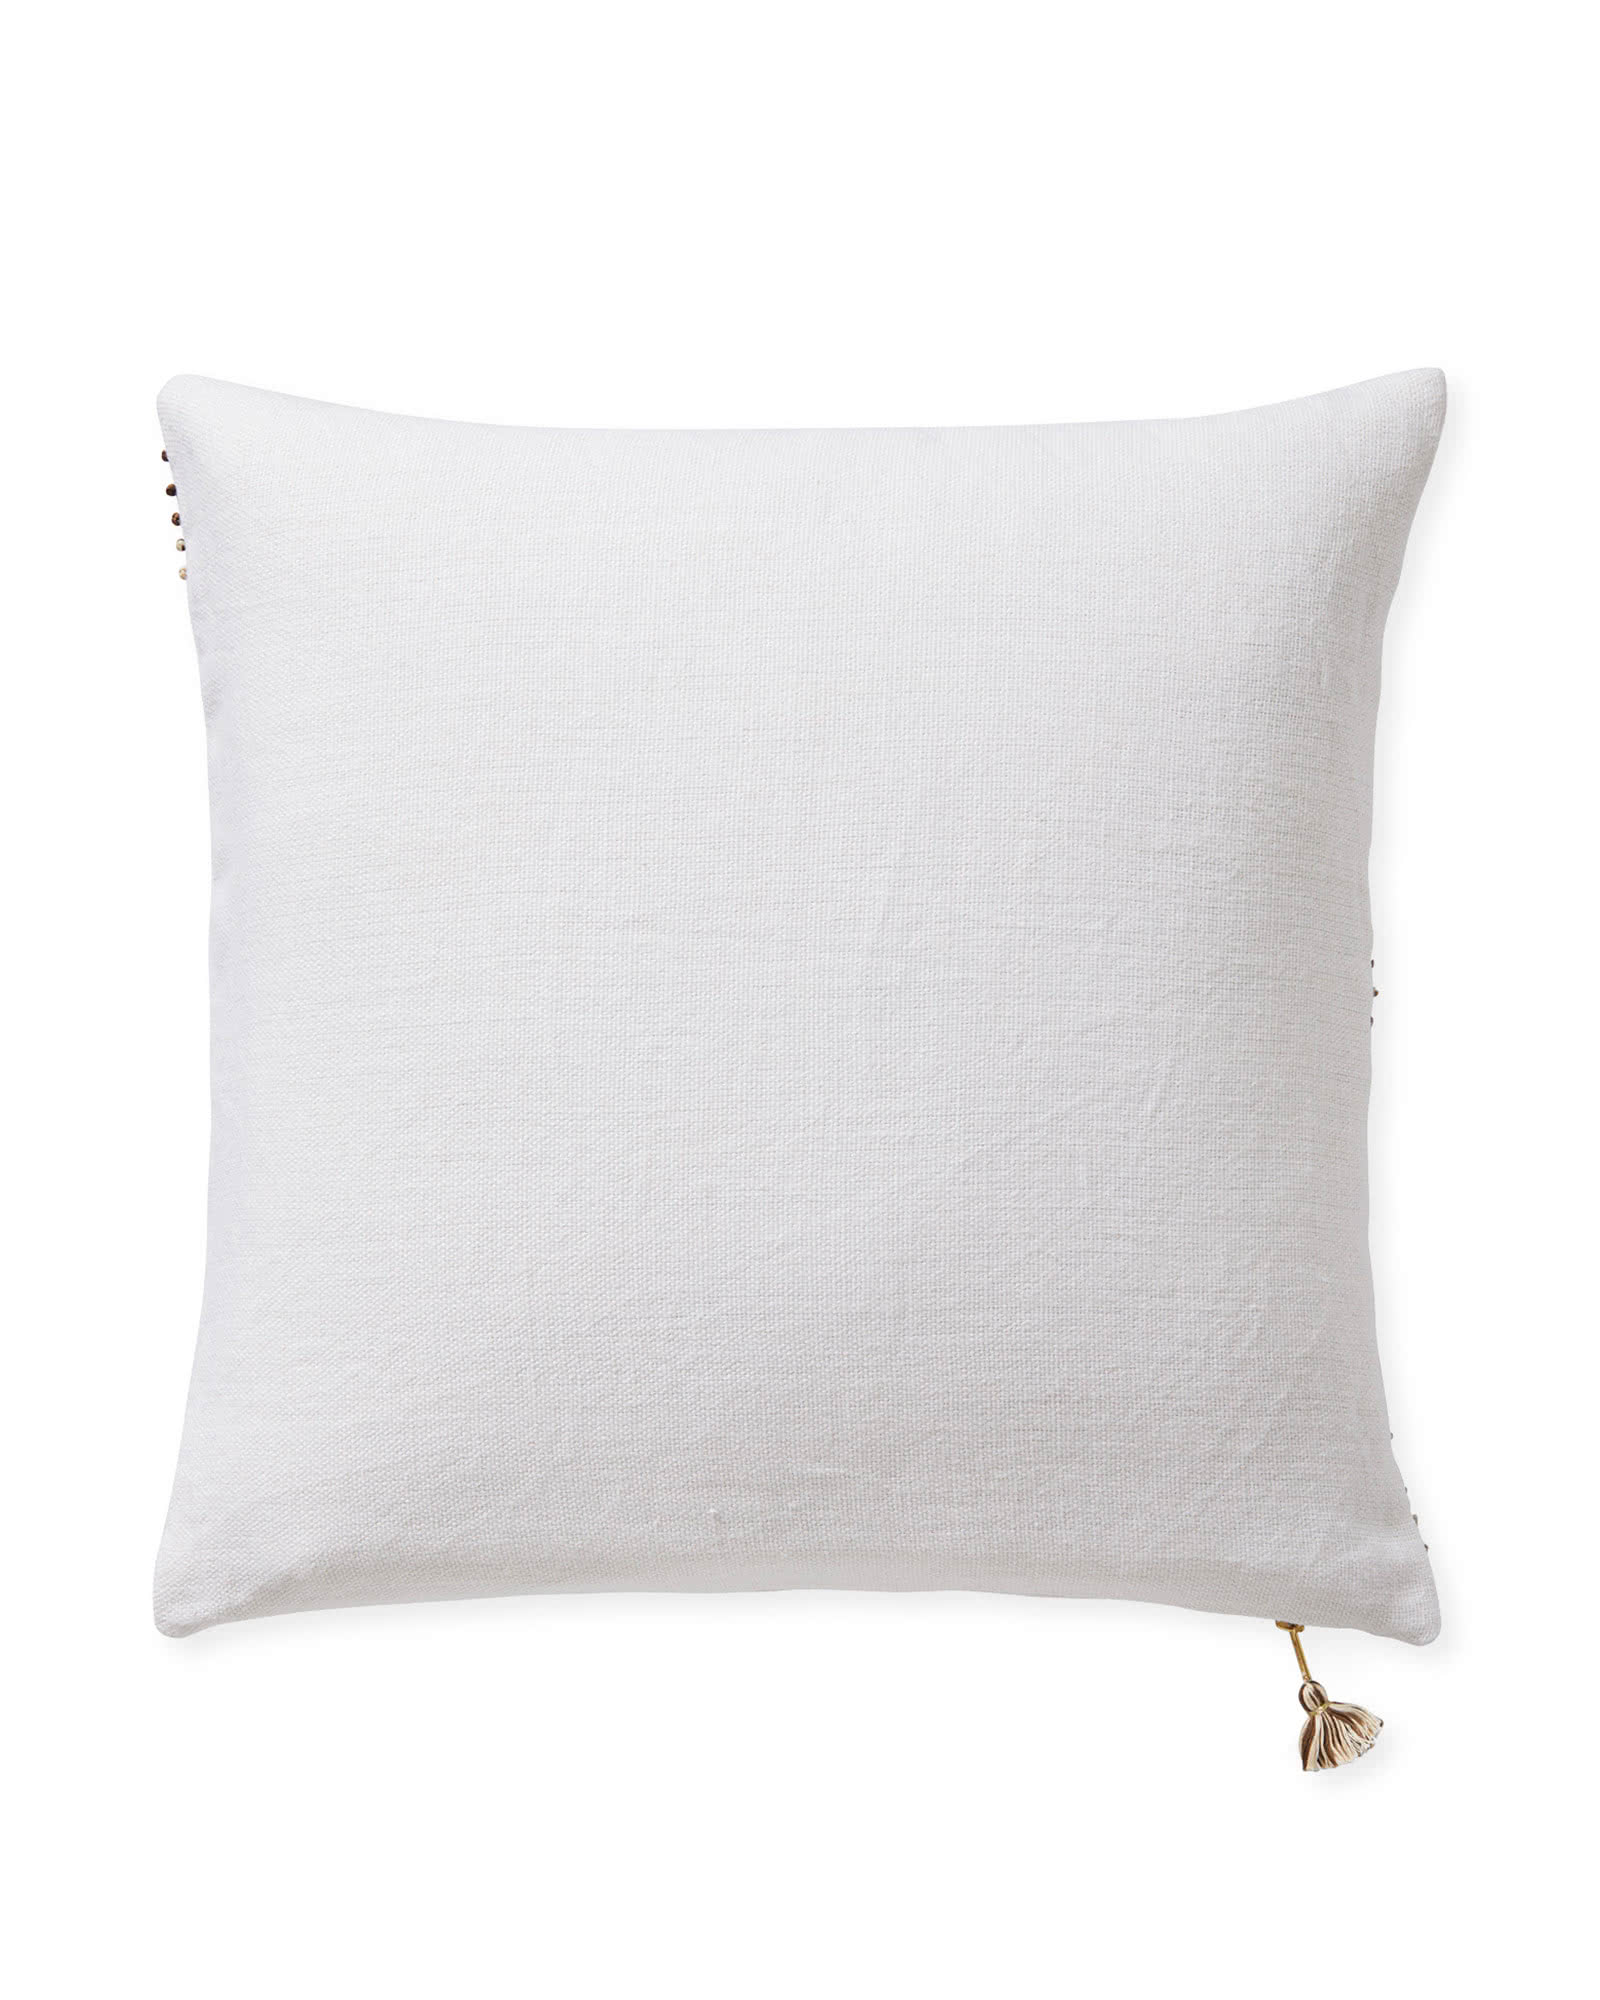 Pryce Pillow Cover, Ivory